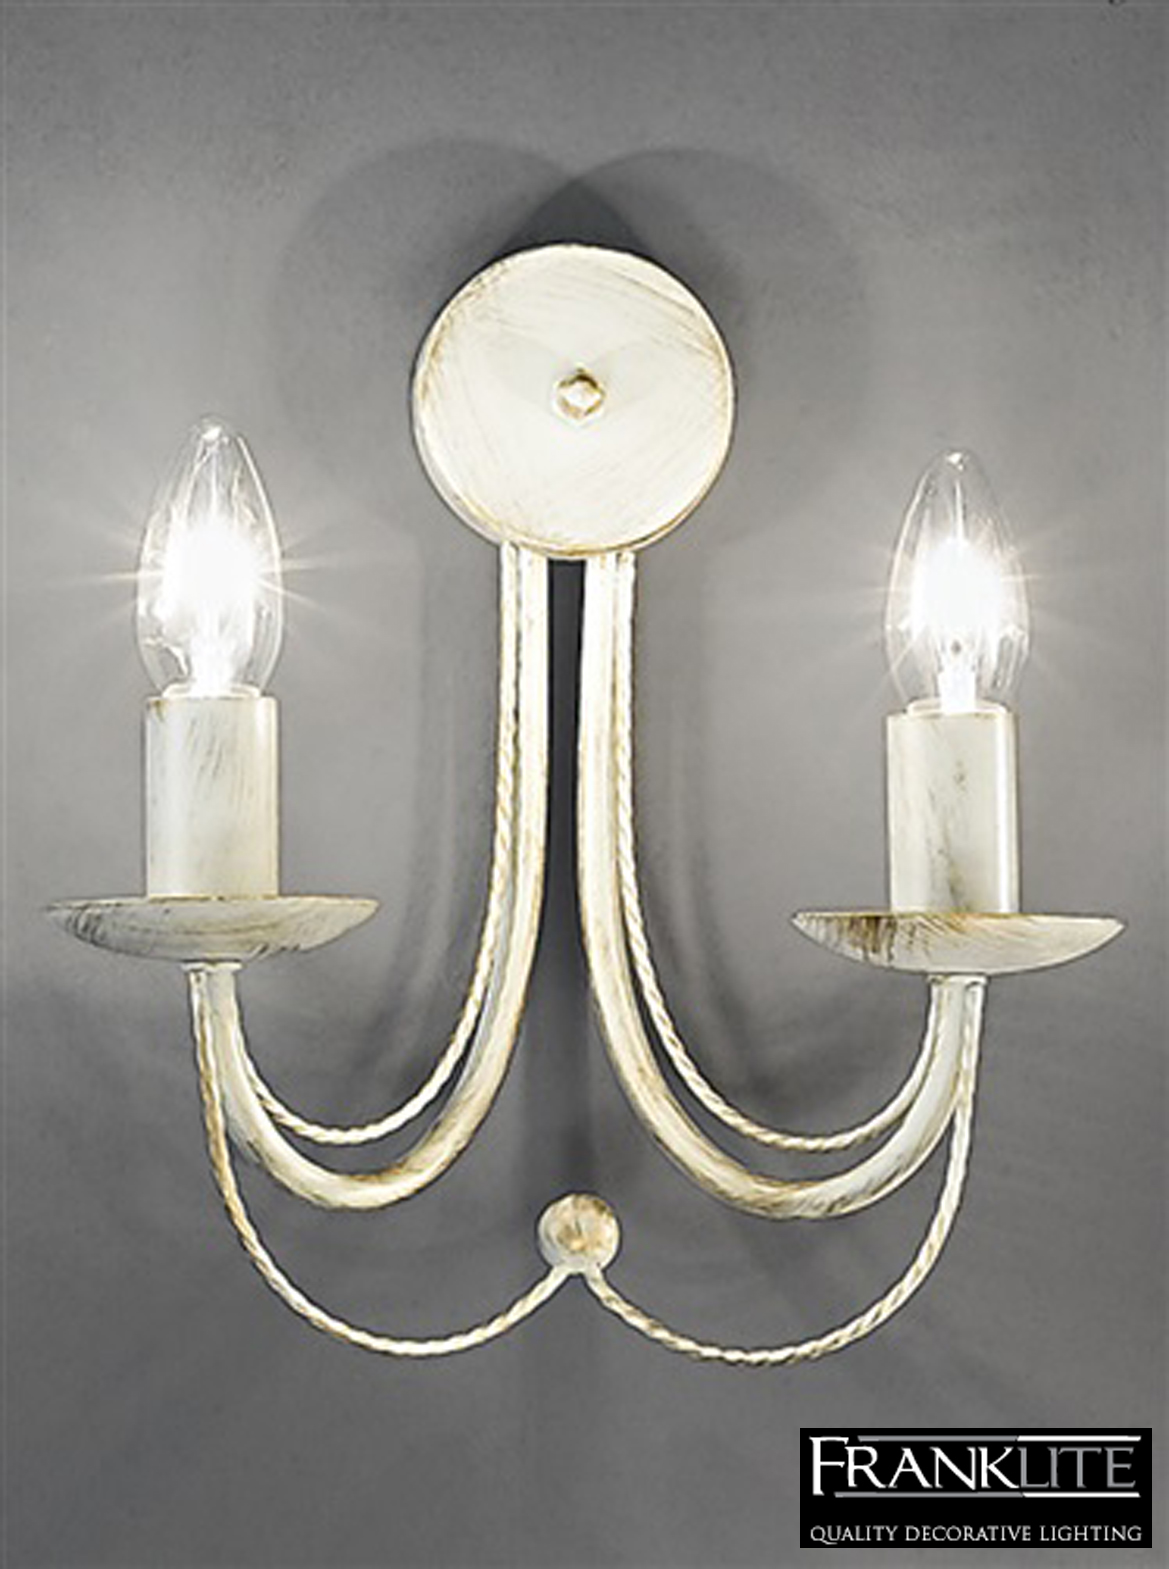 Franklite Philly Cream Ironwork Twin Wall Light - FL2172/2 from Easy Lighting